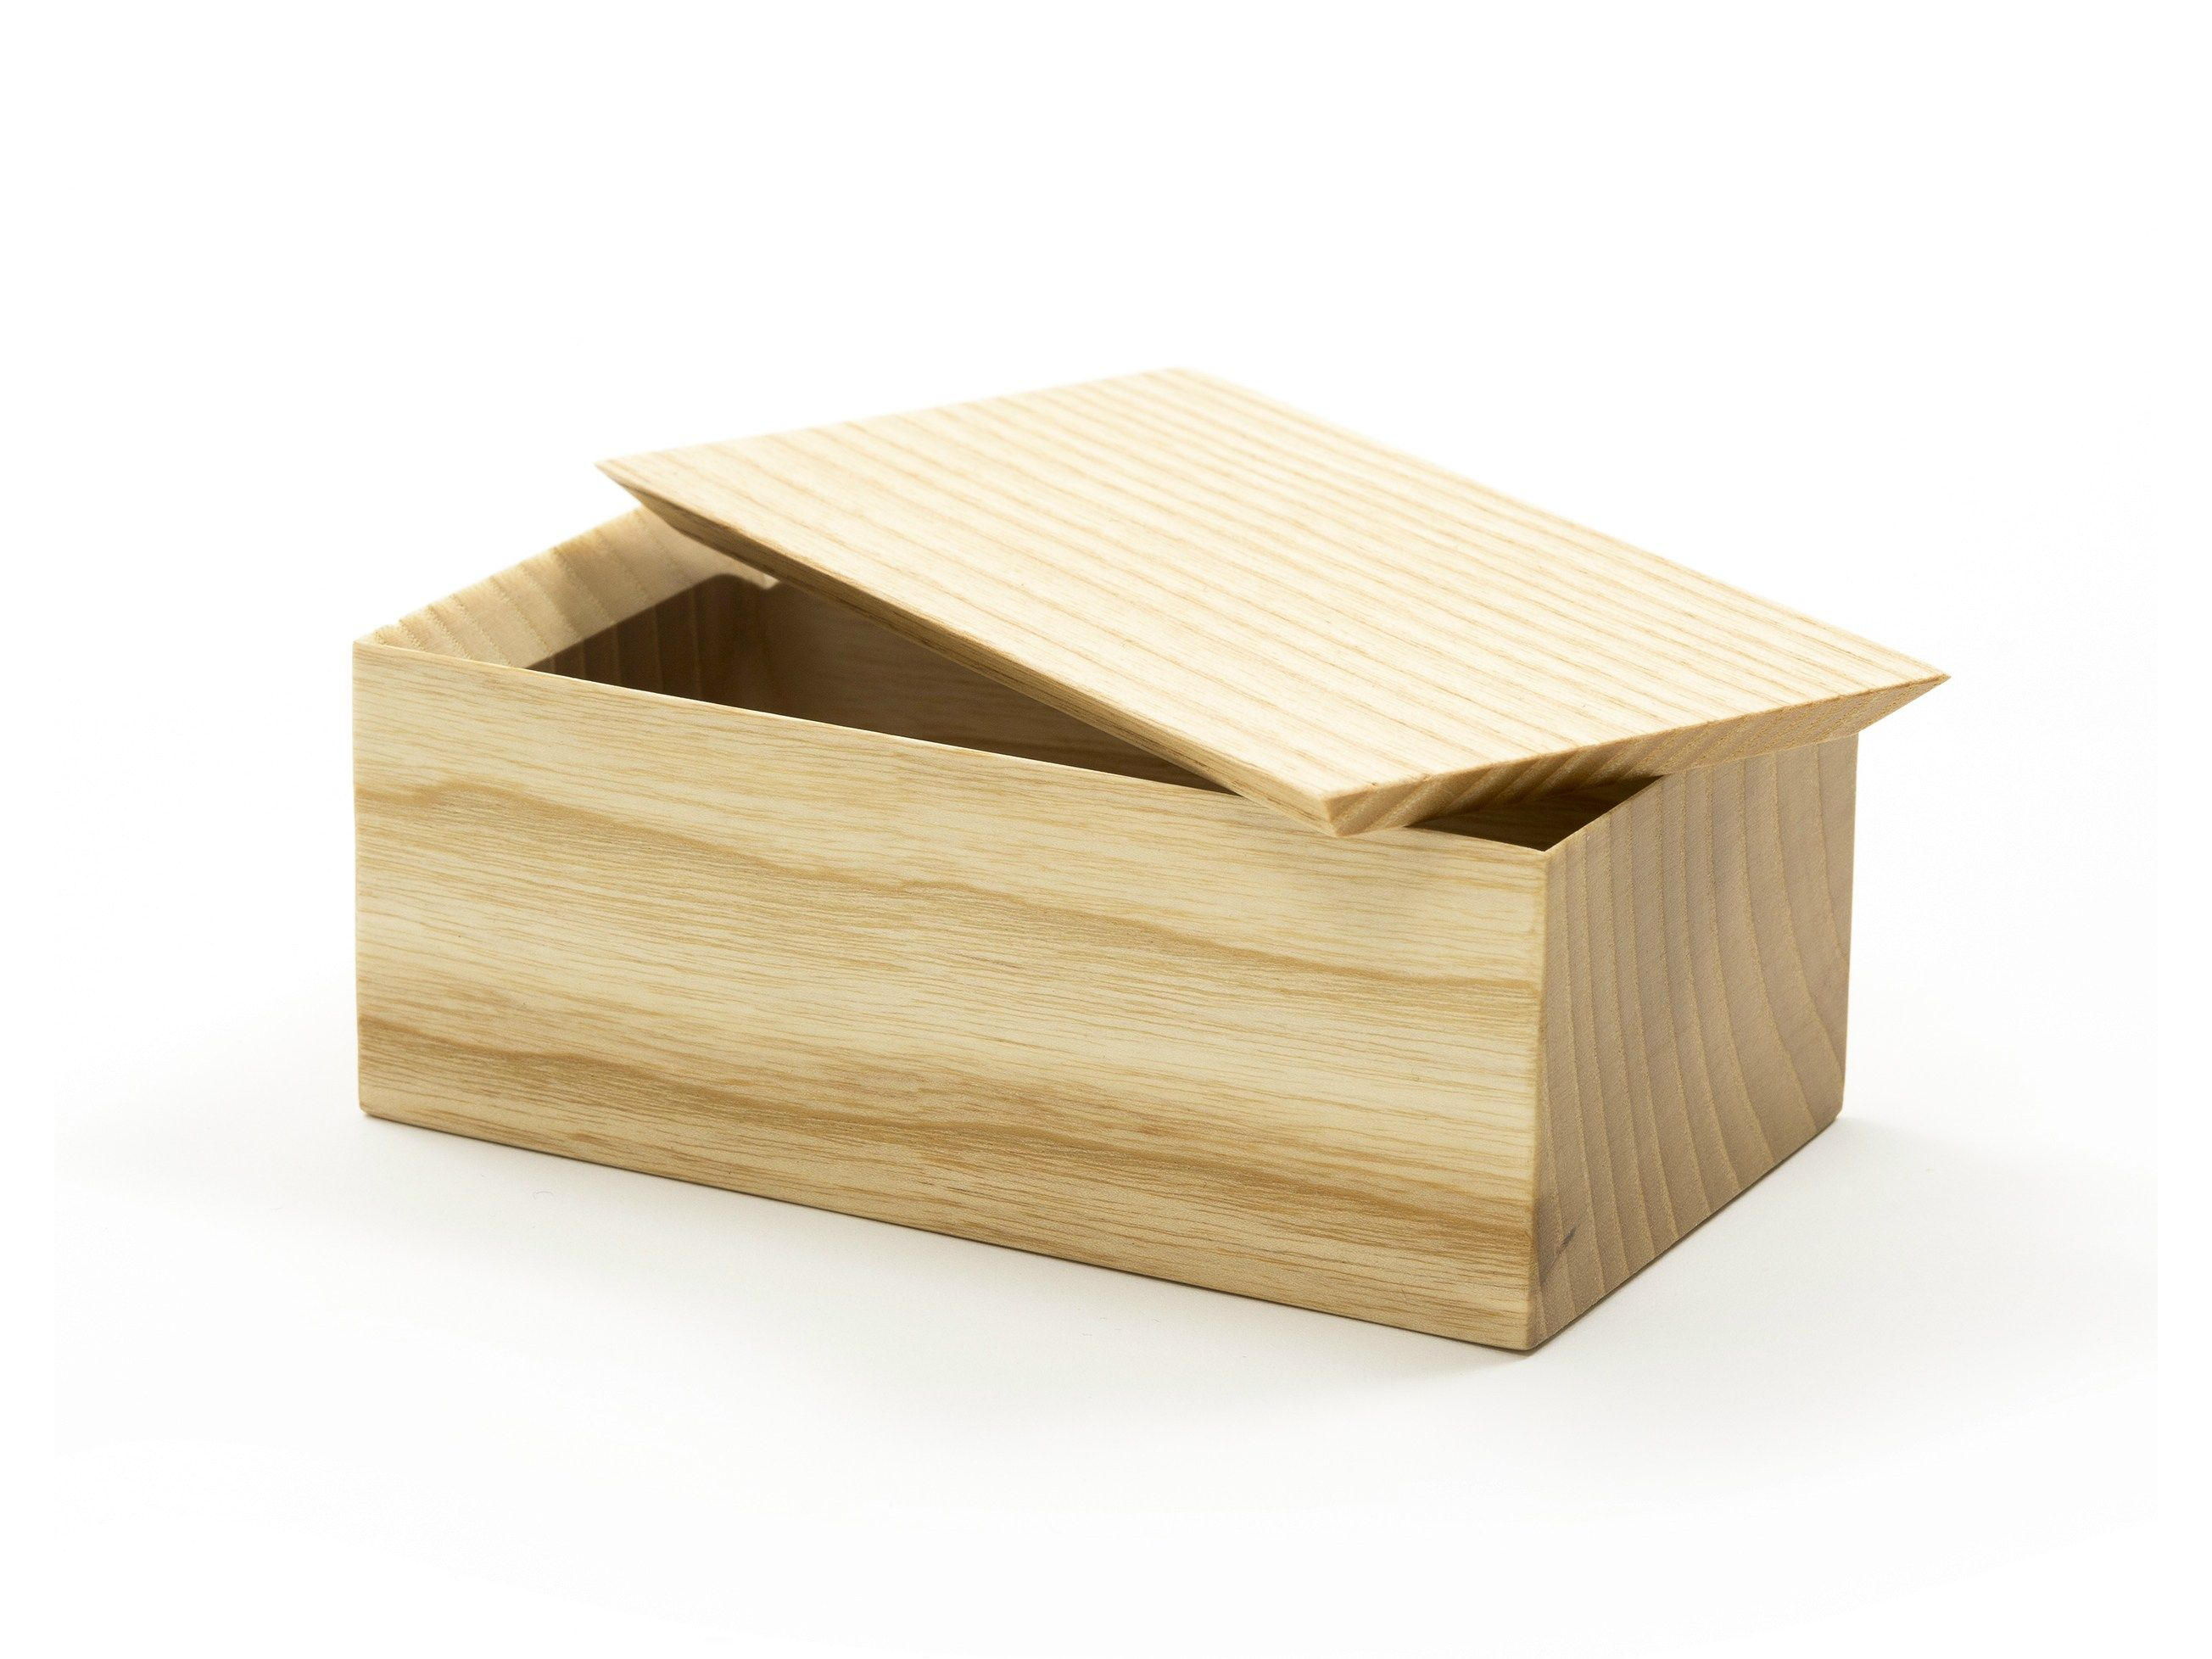 Simple Wooden Box Plans Wood Storage Design